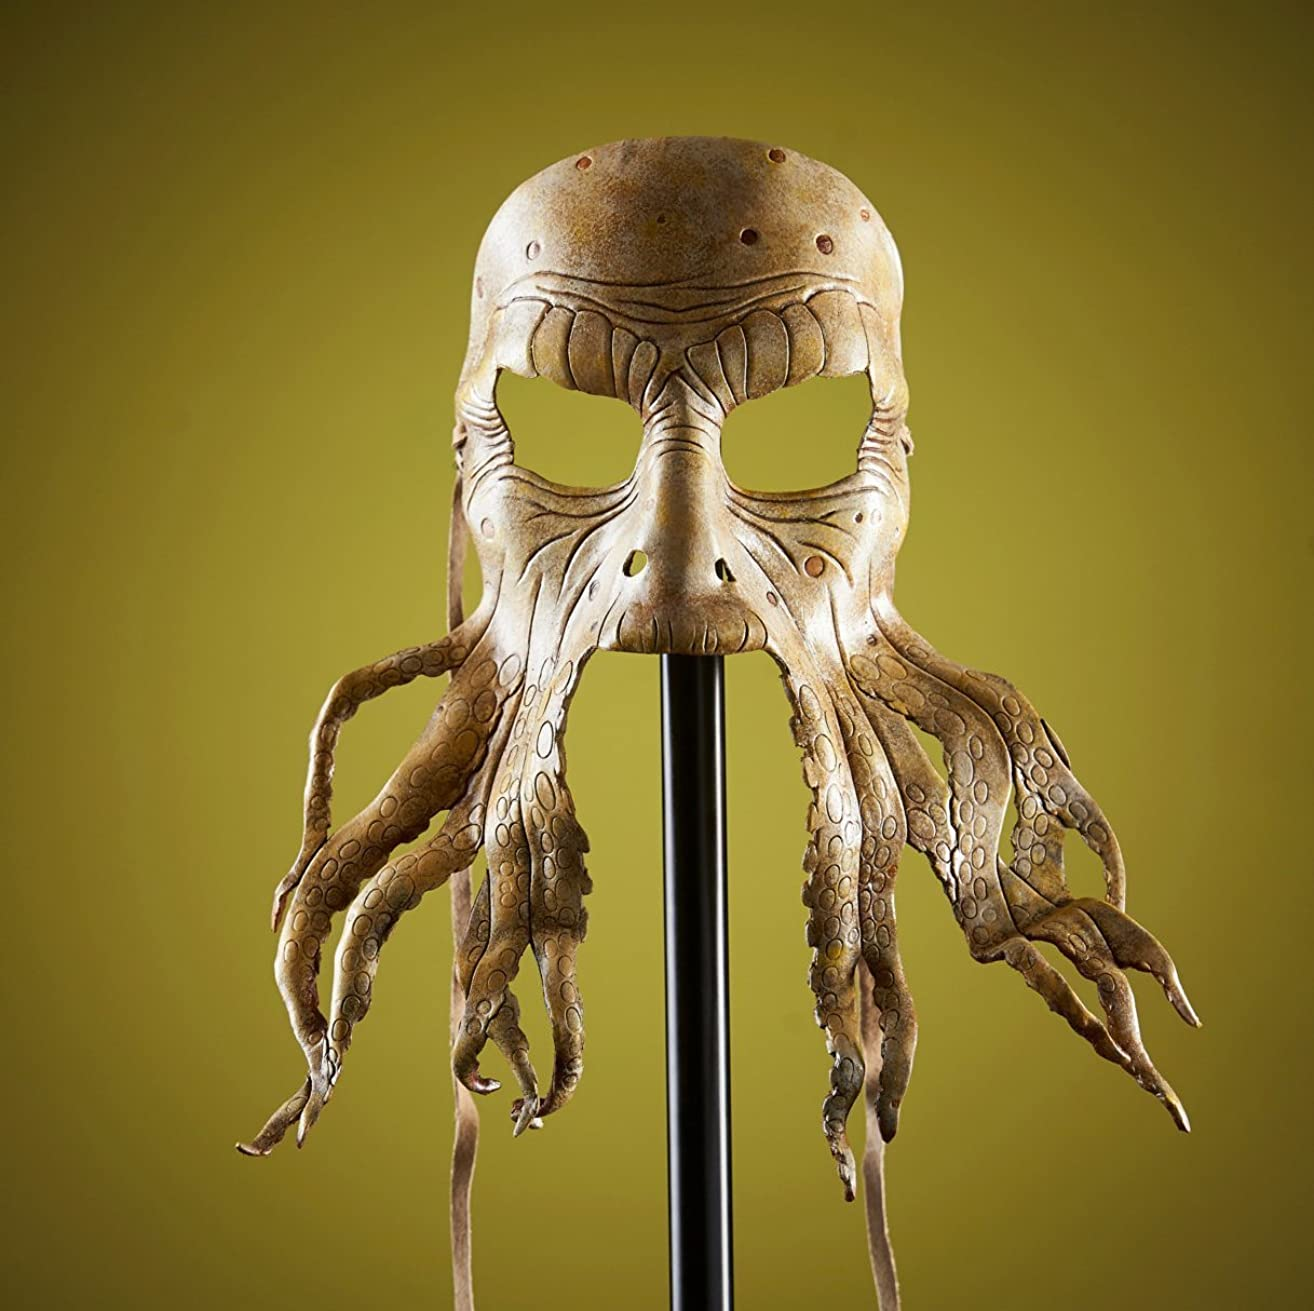 Pirate Octopus Handmade Genuine Leather Mask for Masquerades Halloween or Cosplay